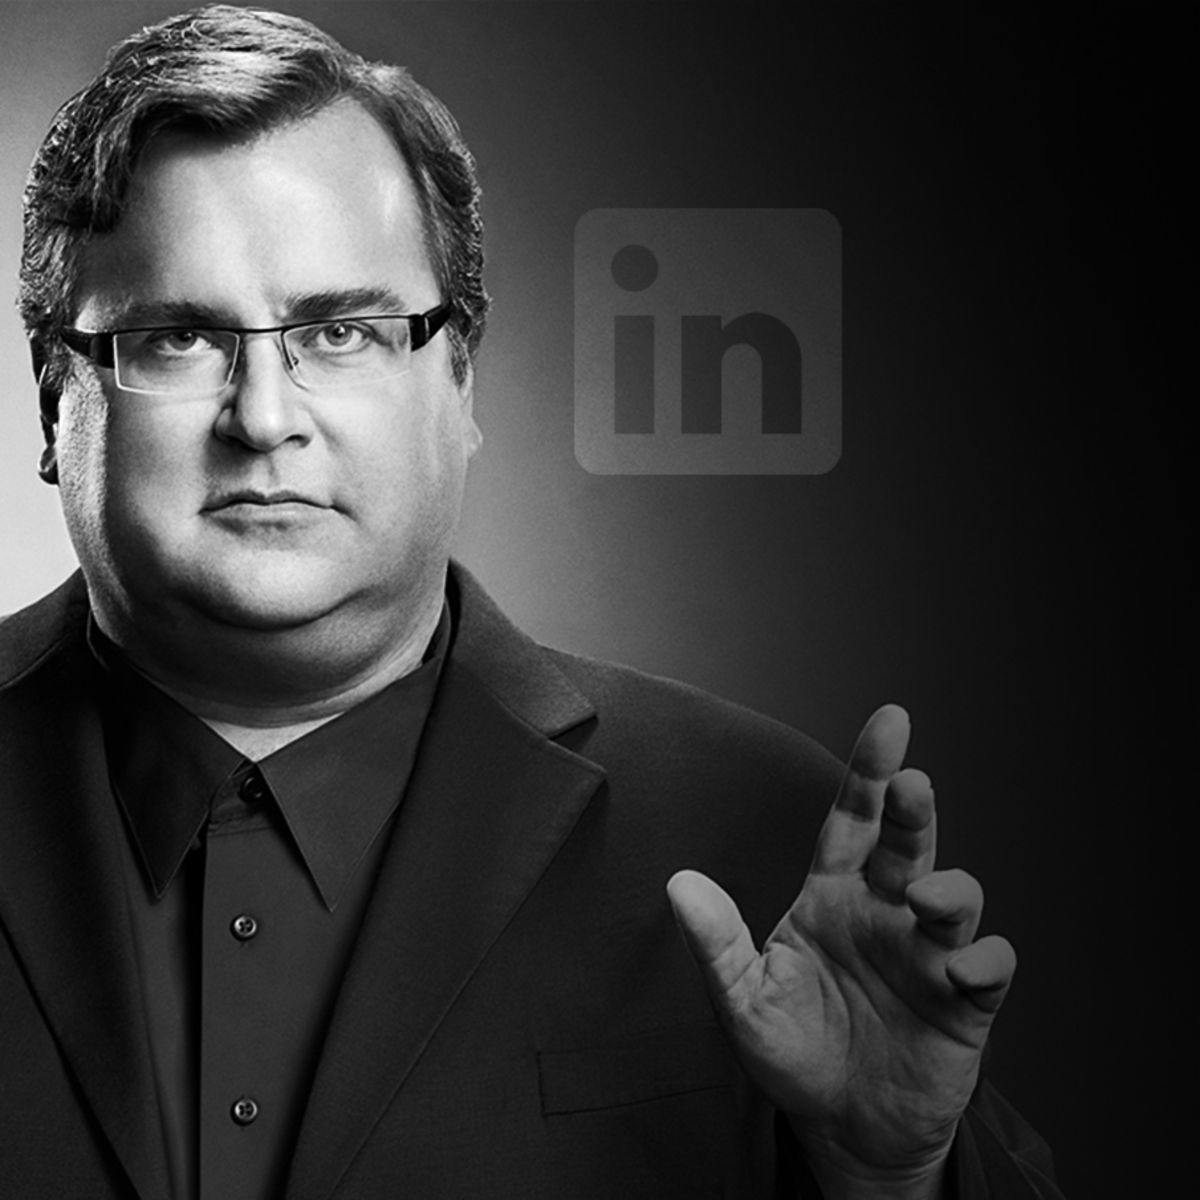 one of Linkedin founders, Reid Hoffman